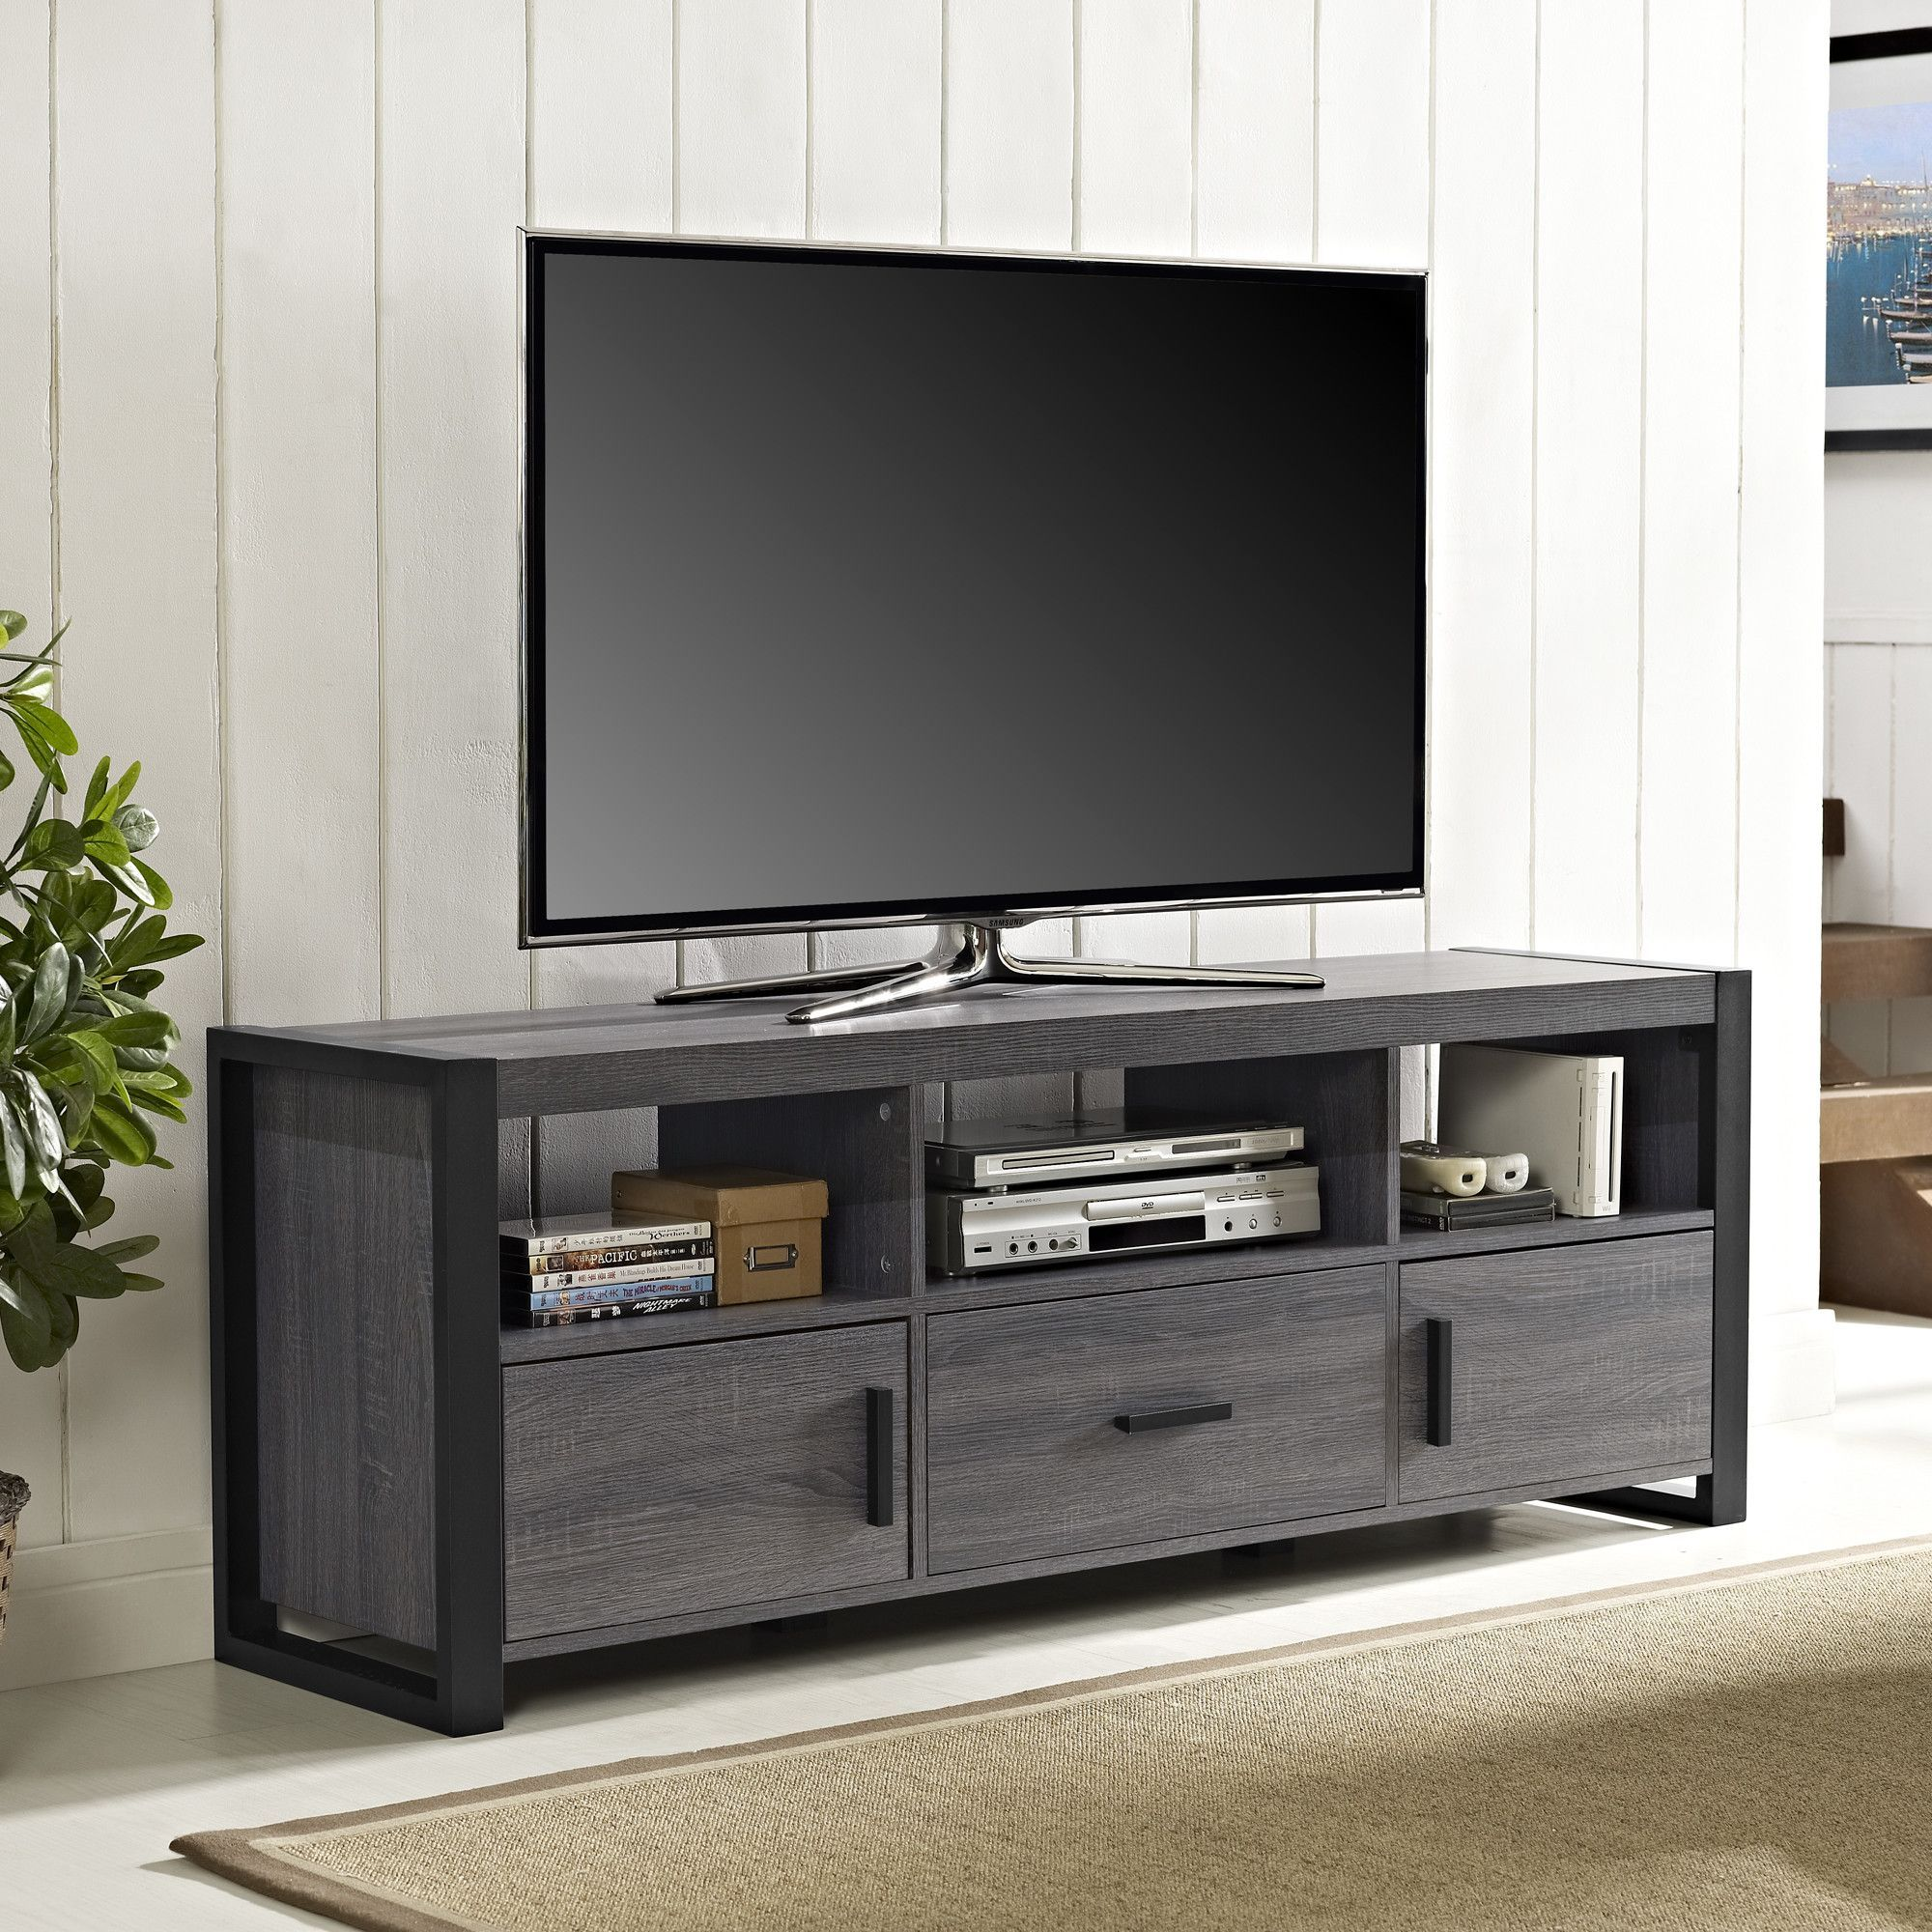 Tv Stand Products Pinterest Tv Stands And Products # Groupon Meuble Tv